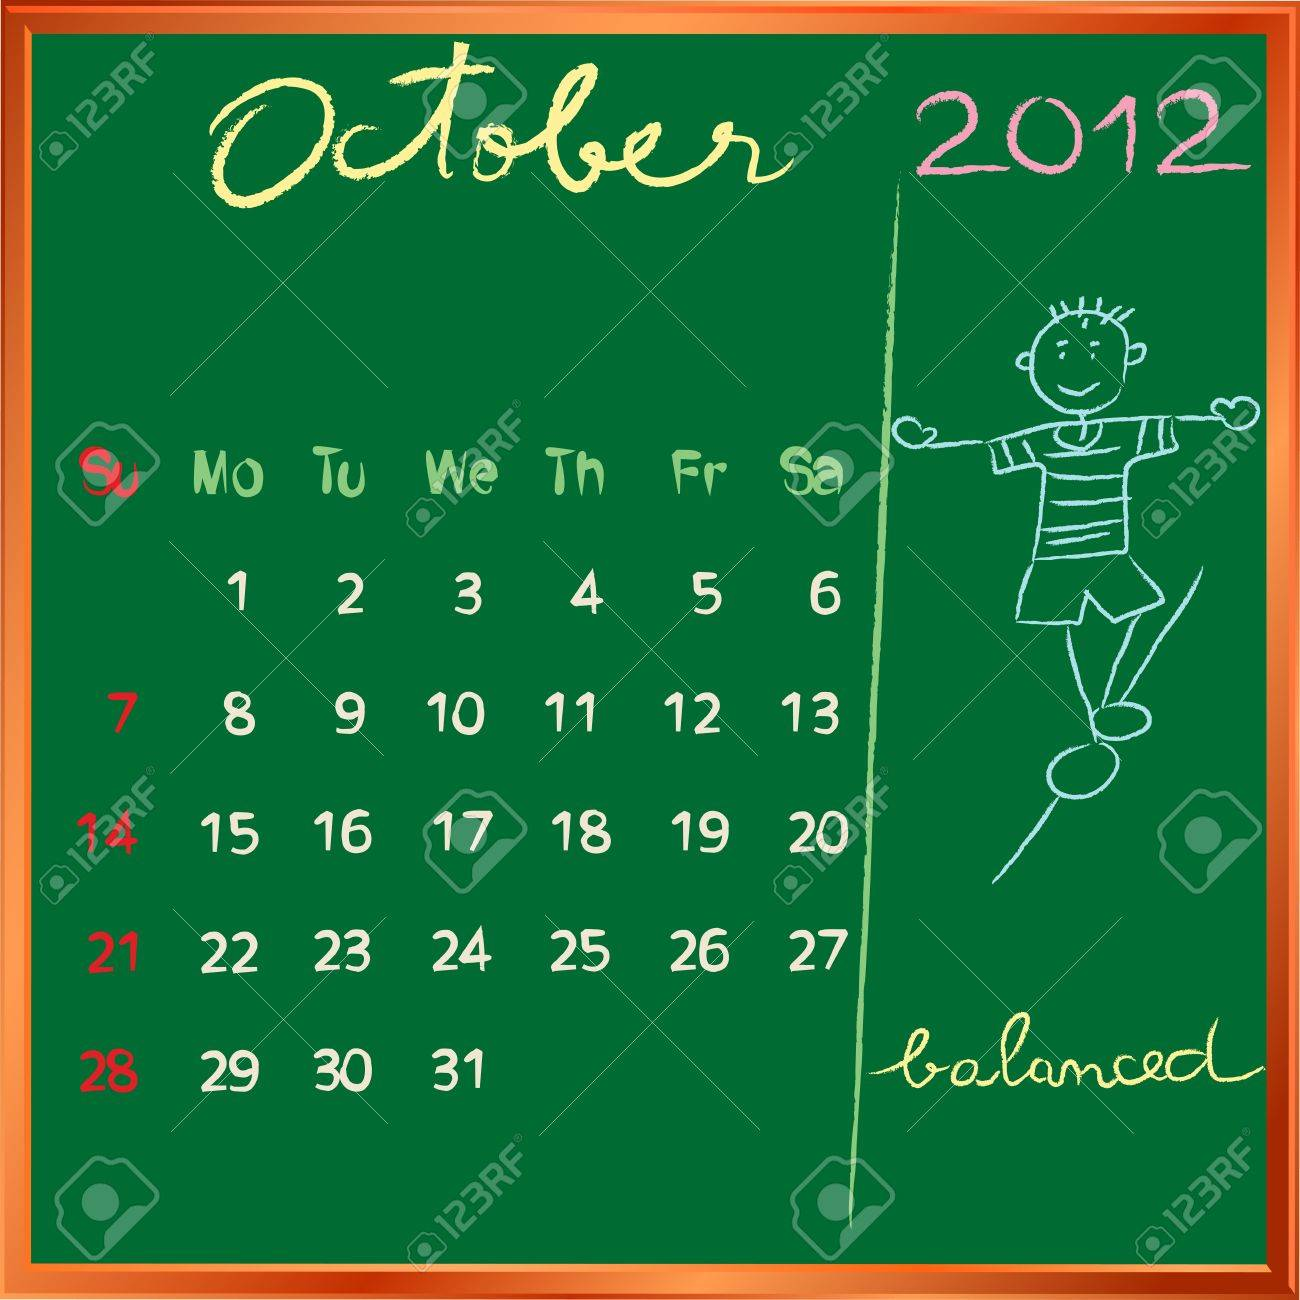 2012 calendar on a blackboard, october design with the happy balanced student profile for international schools Stock Vector - 11479200